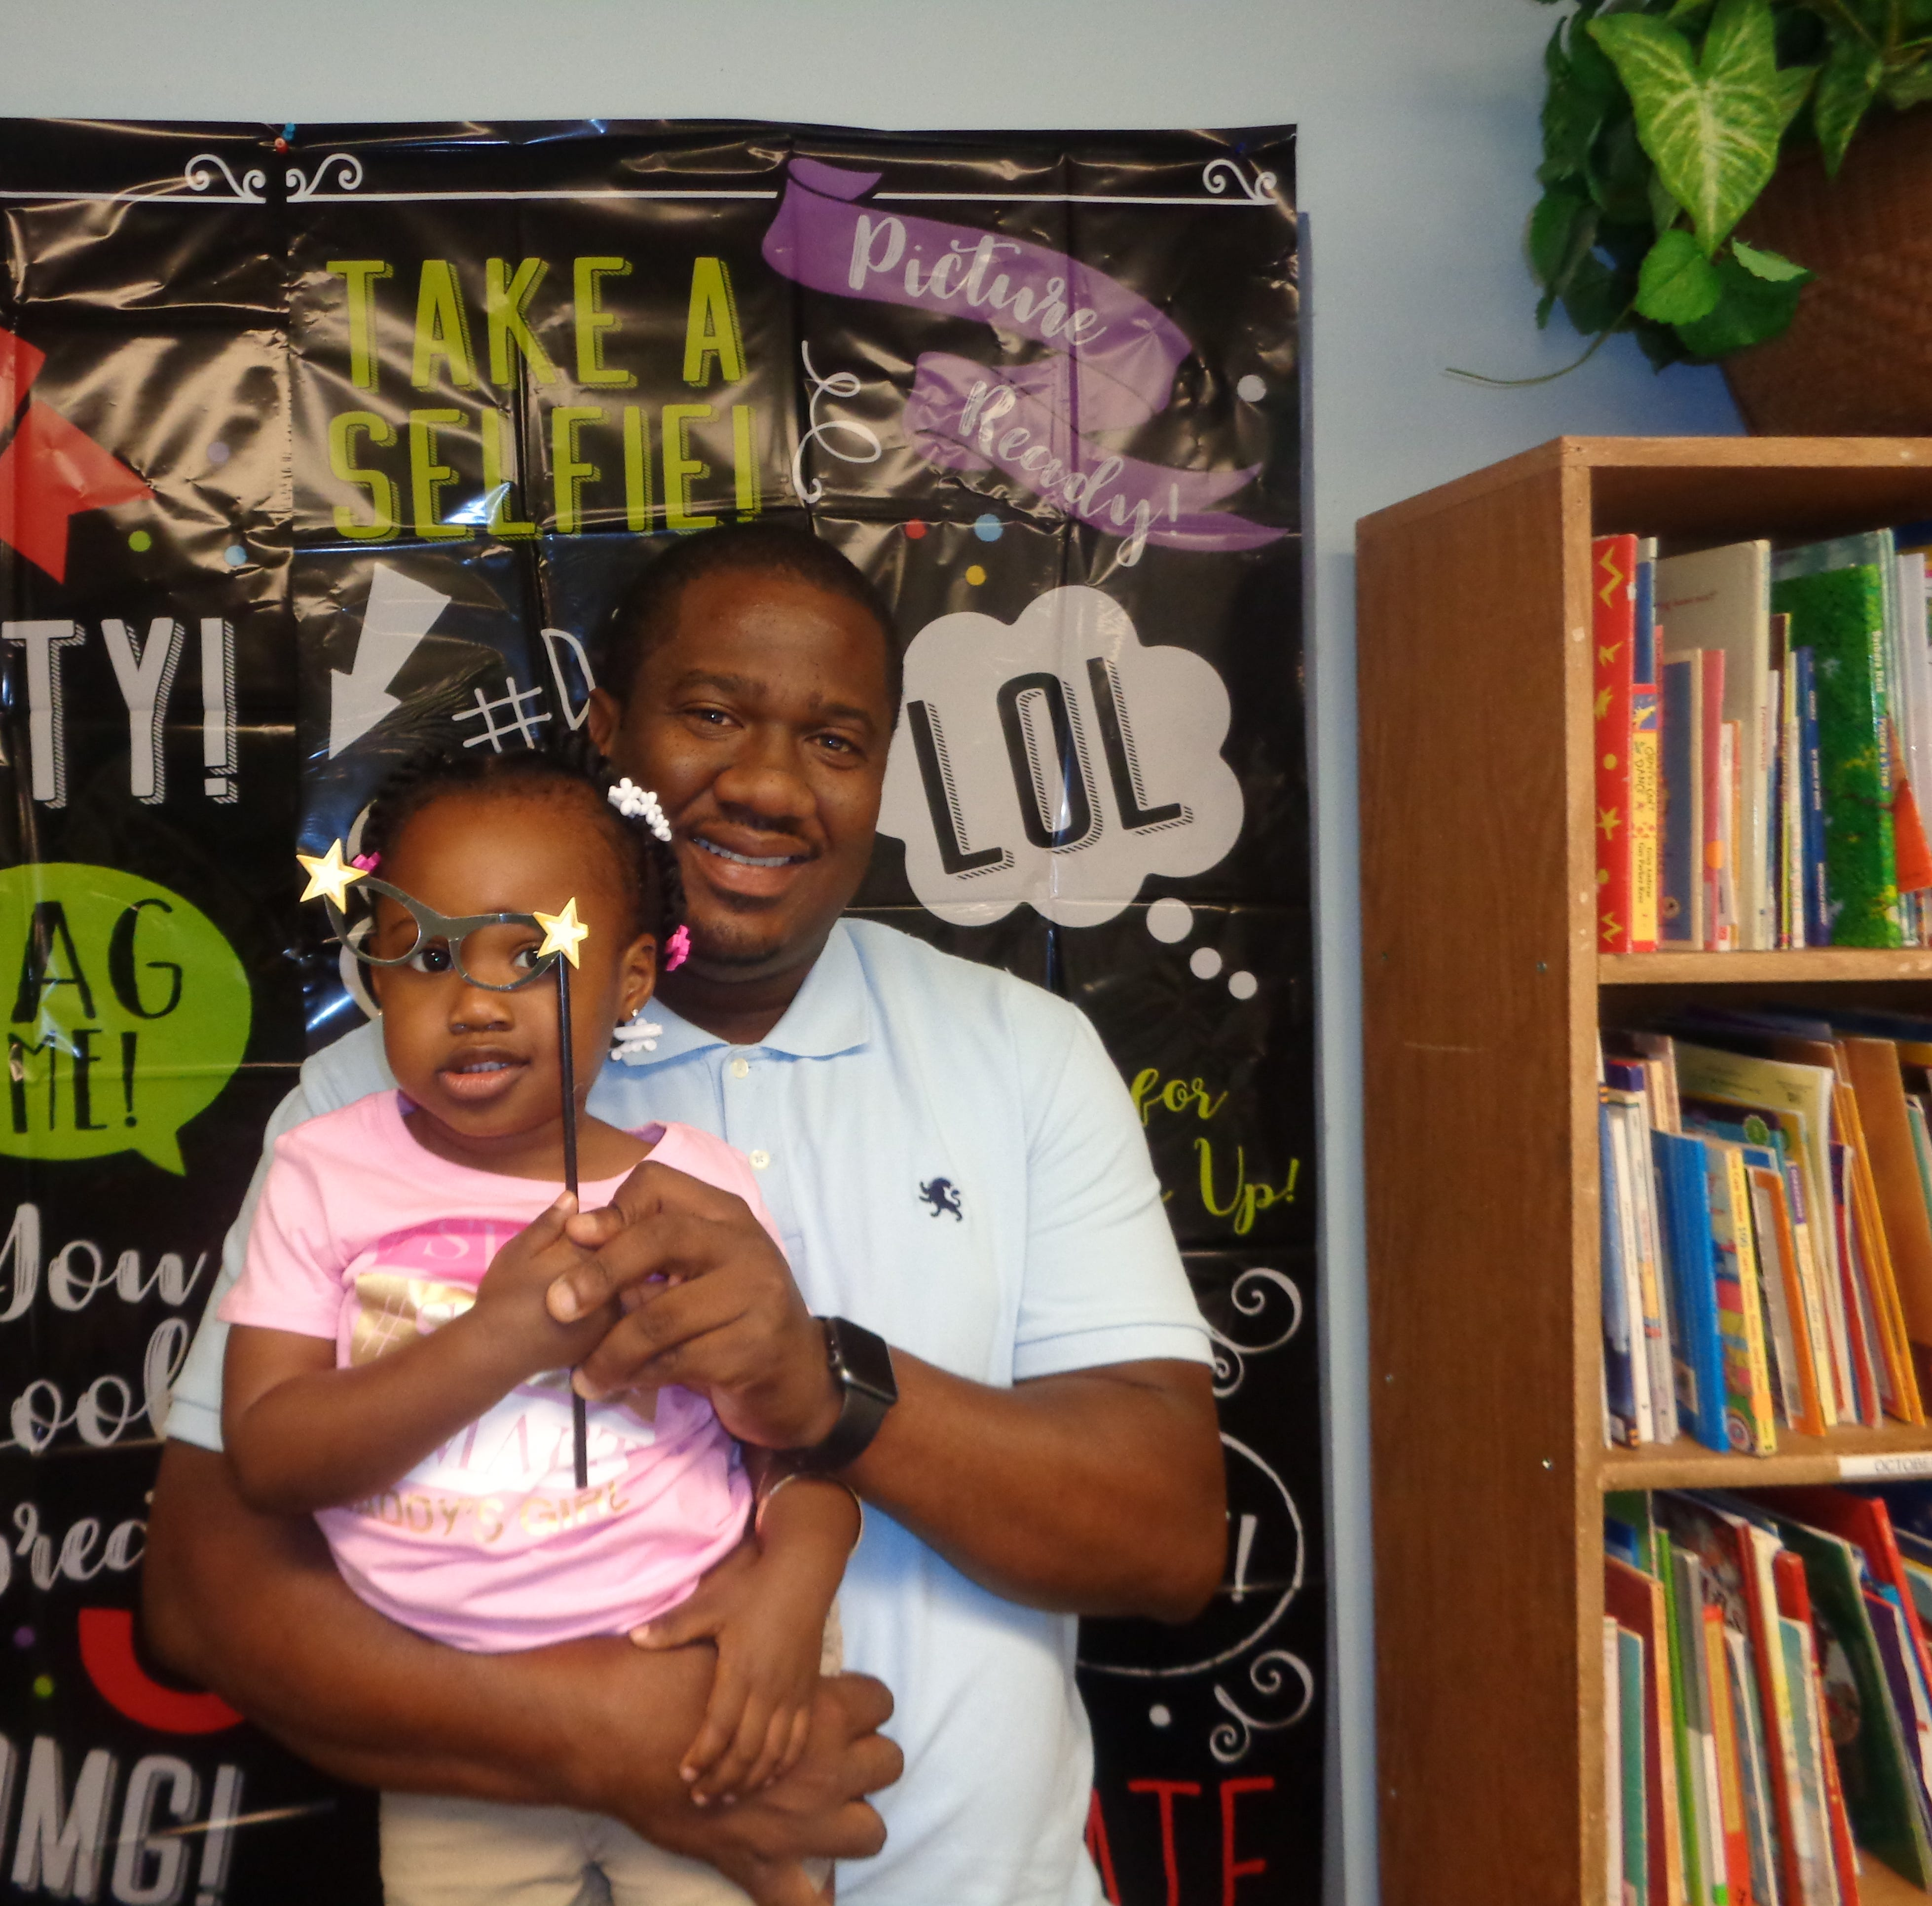 Dads show up strong at 'Take Your Dad to School Day' in Stuart